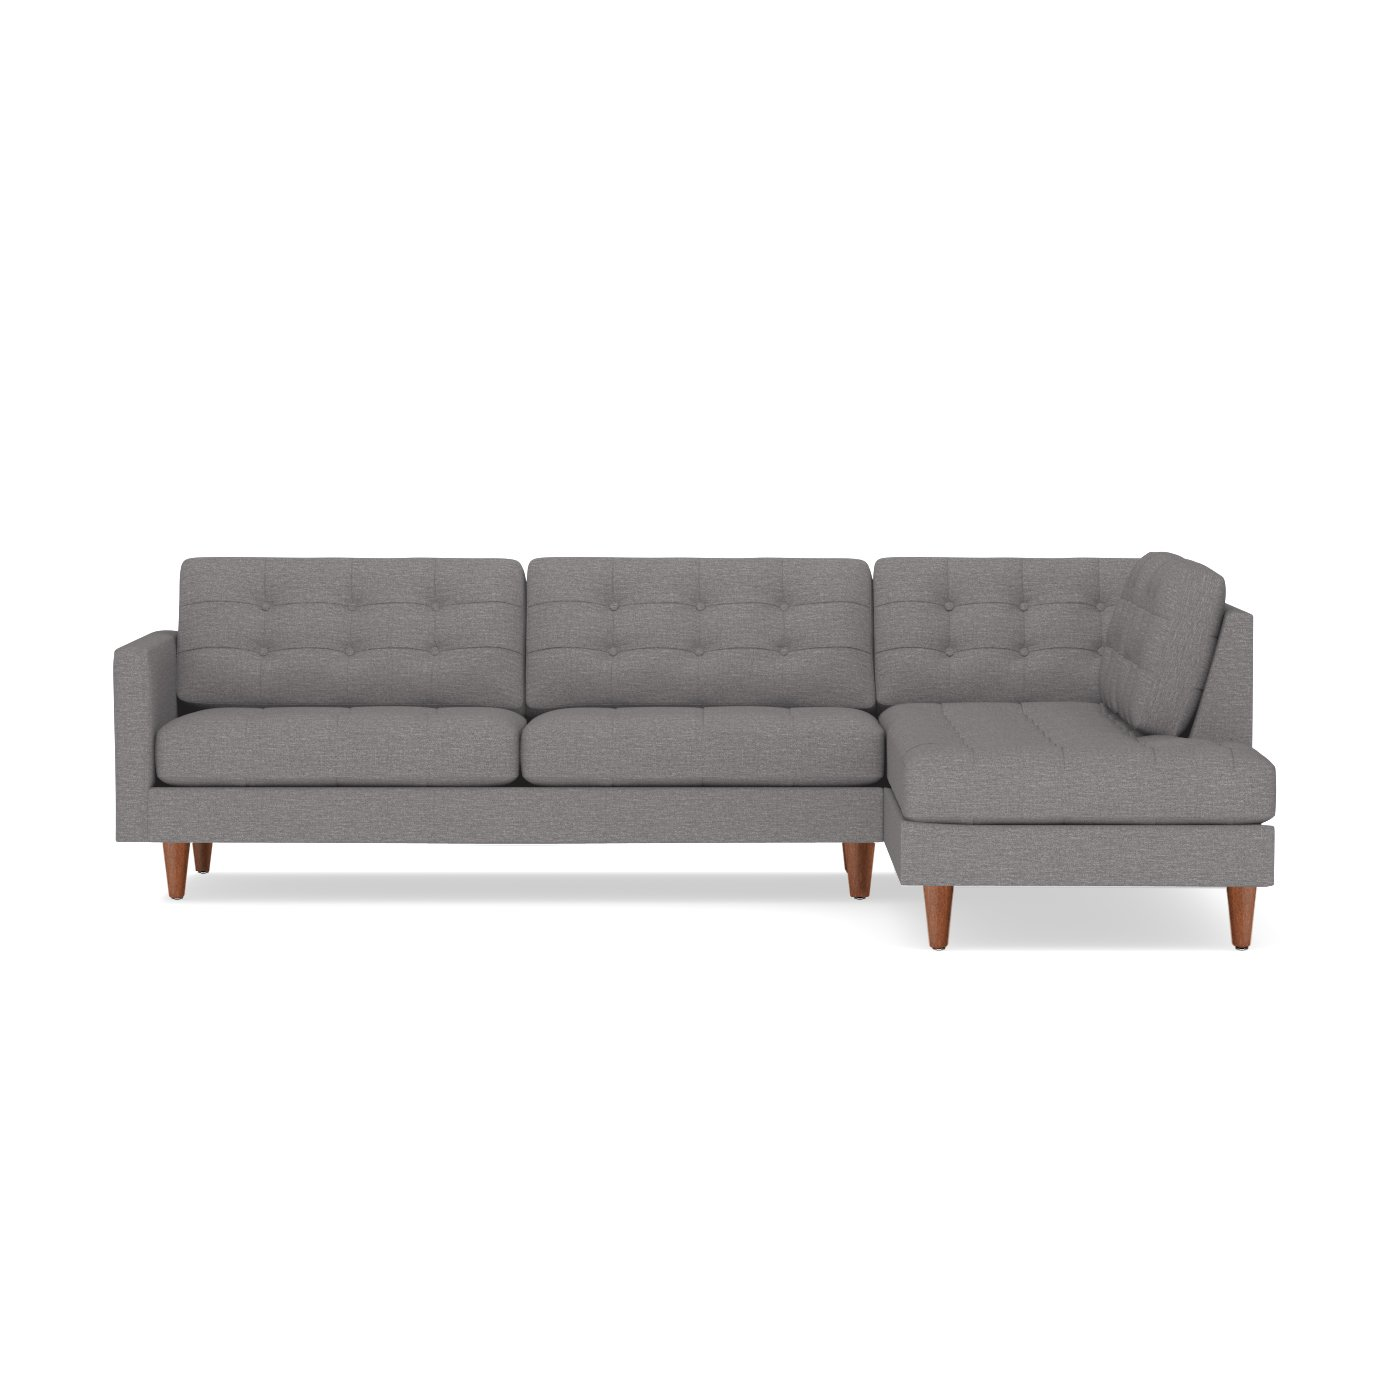 Lexington 2pc Sectional Sofa  sc 1 st  Apt2B : sectional coach - Sectionals, Sofas & Couches